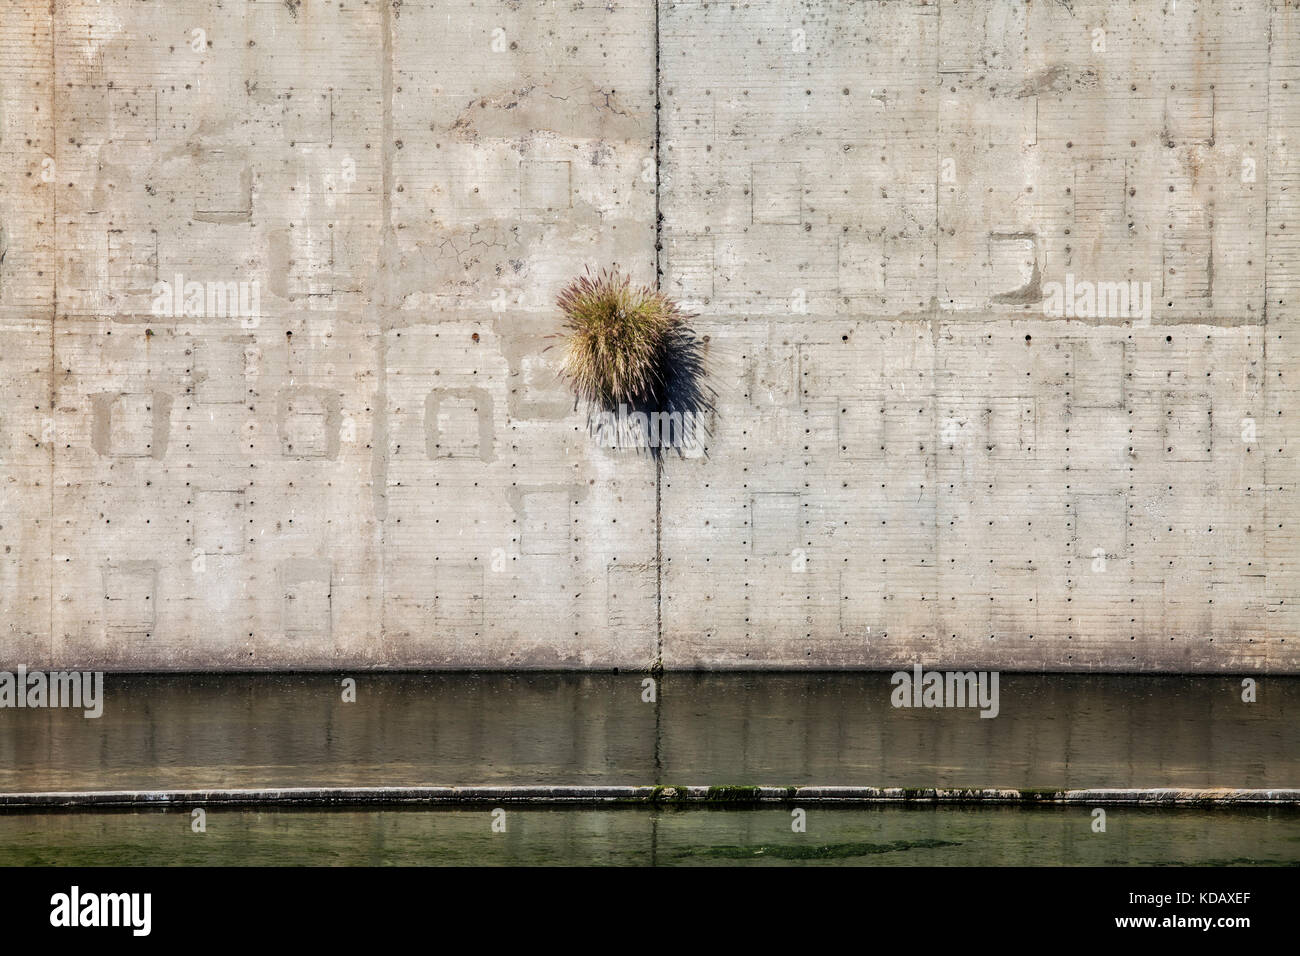 Plant growing out of wall along Los Angeles River, Downtown Los Angeles, California, USA Stock Photo